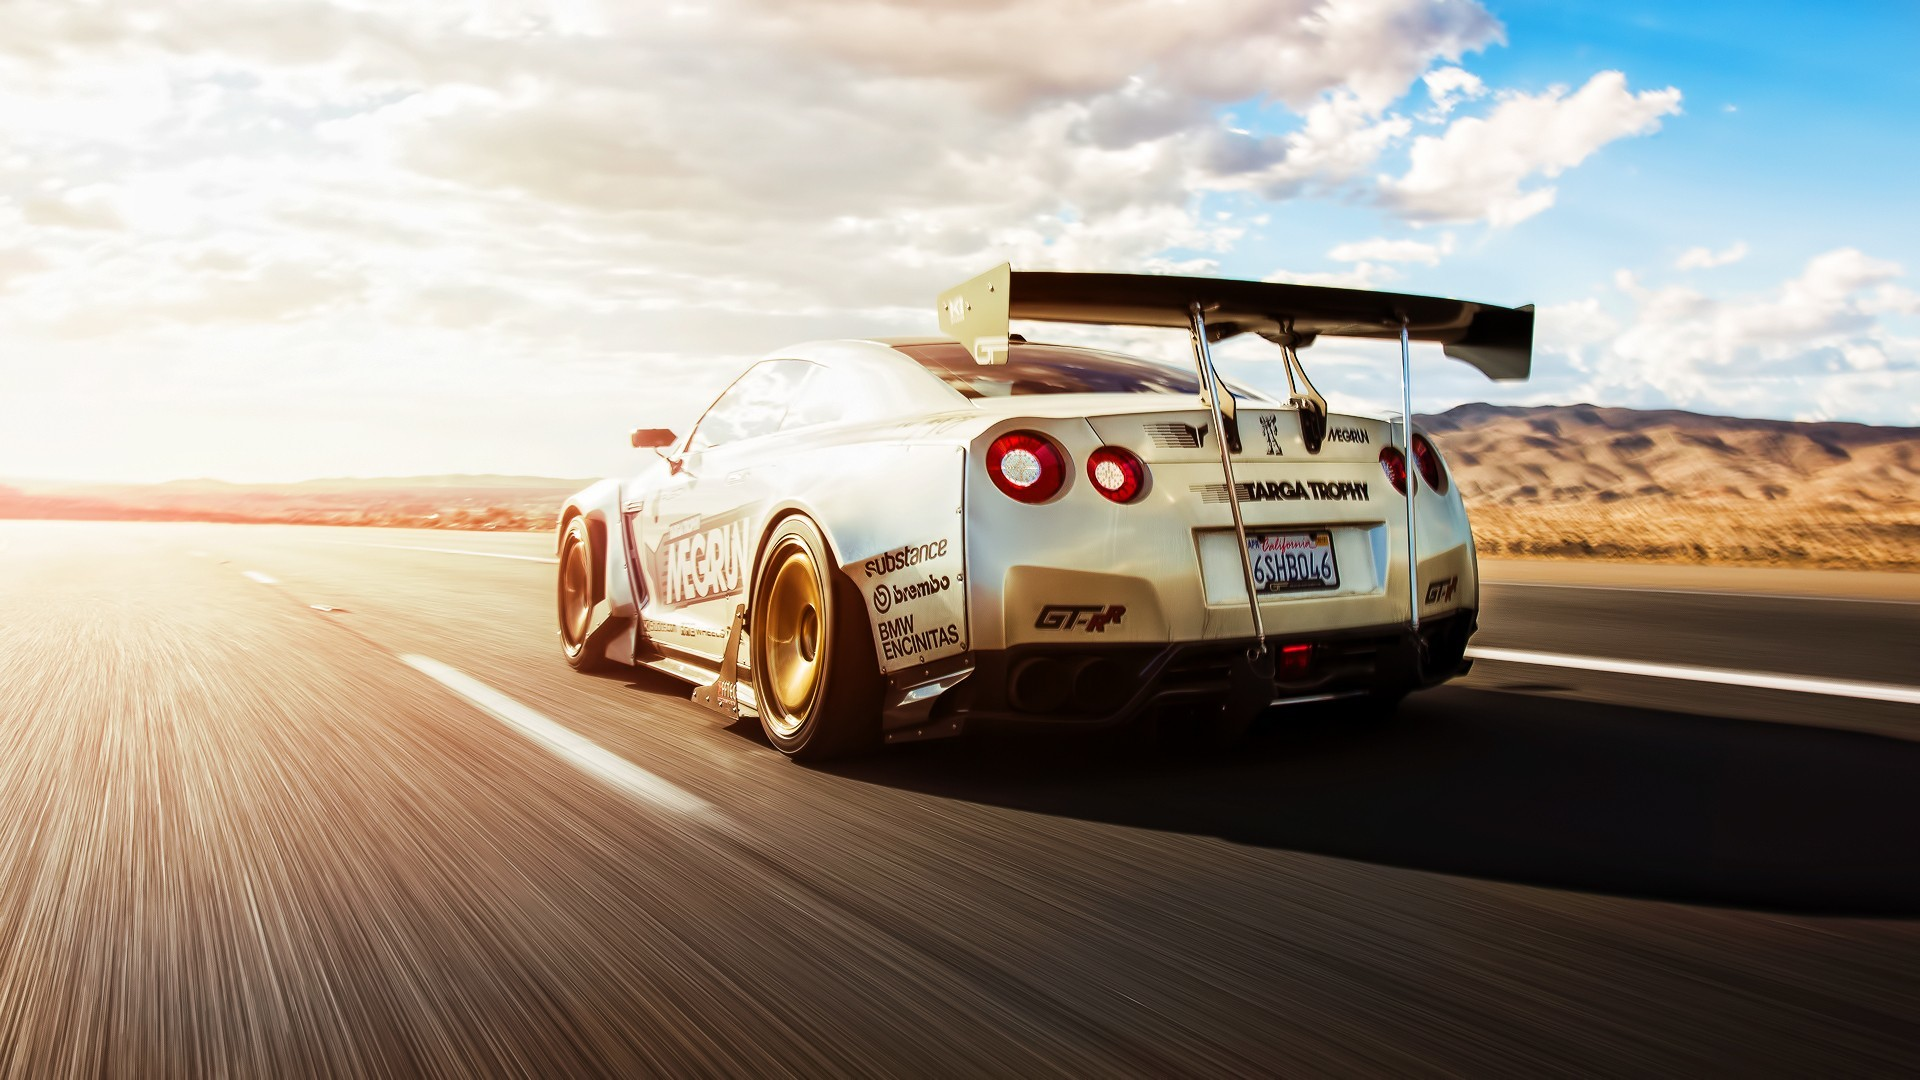 Car Tuning Nissan Skyline Gt R R35 Wallpapers Hd Nissan Gtr R35 Tuned 1920x1080 Download Hd Wallpaper Wallpapertip